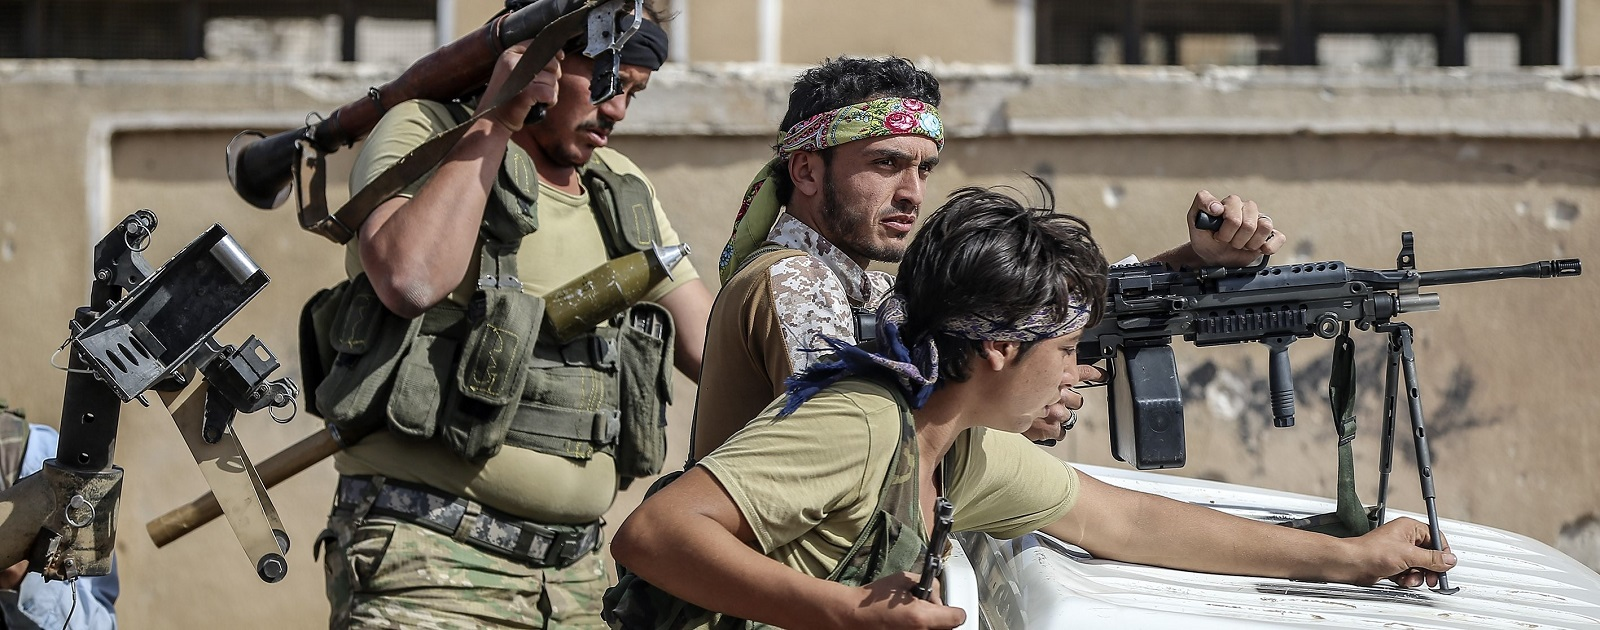 Members of opponent groups linked to Free Syrian Army in Aleppo, Syria in October last year.  (Photo: Emin Sansar/Getty Images)